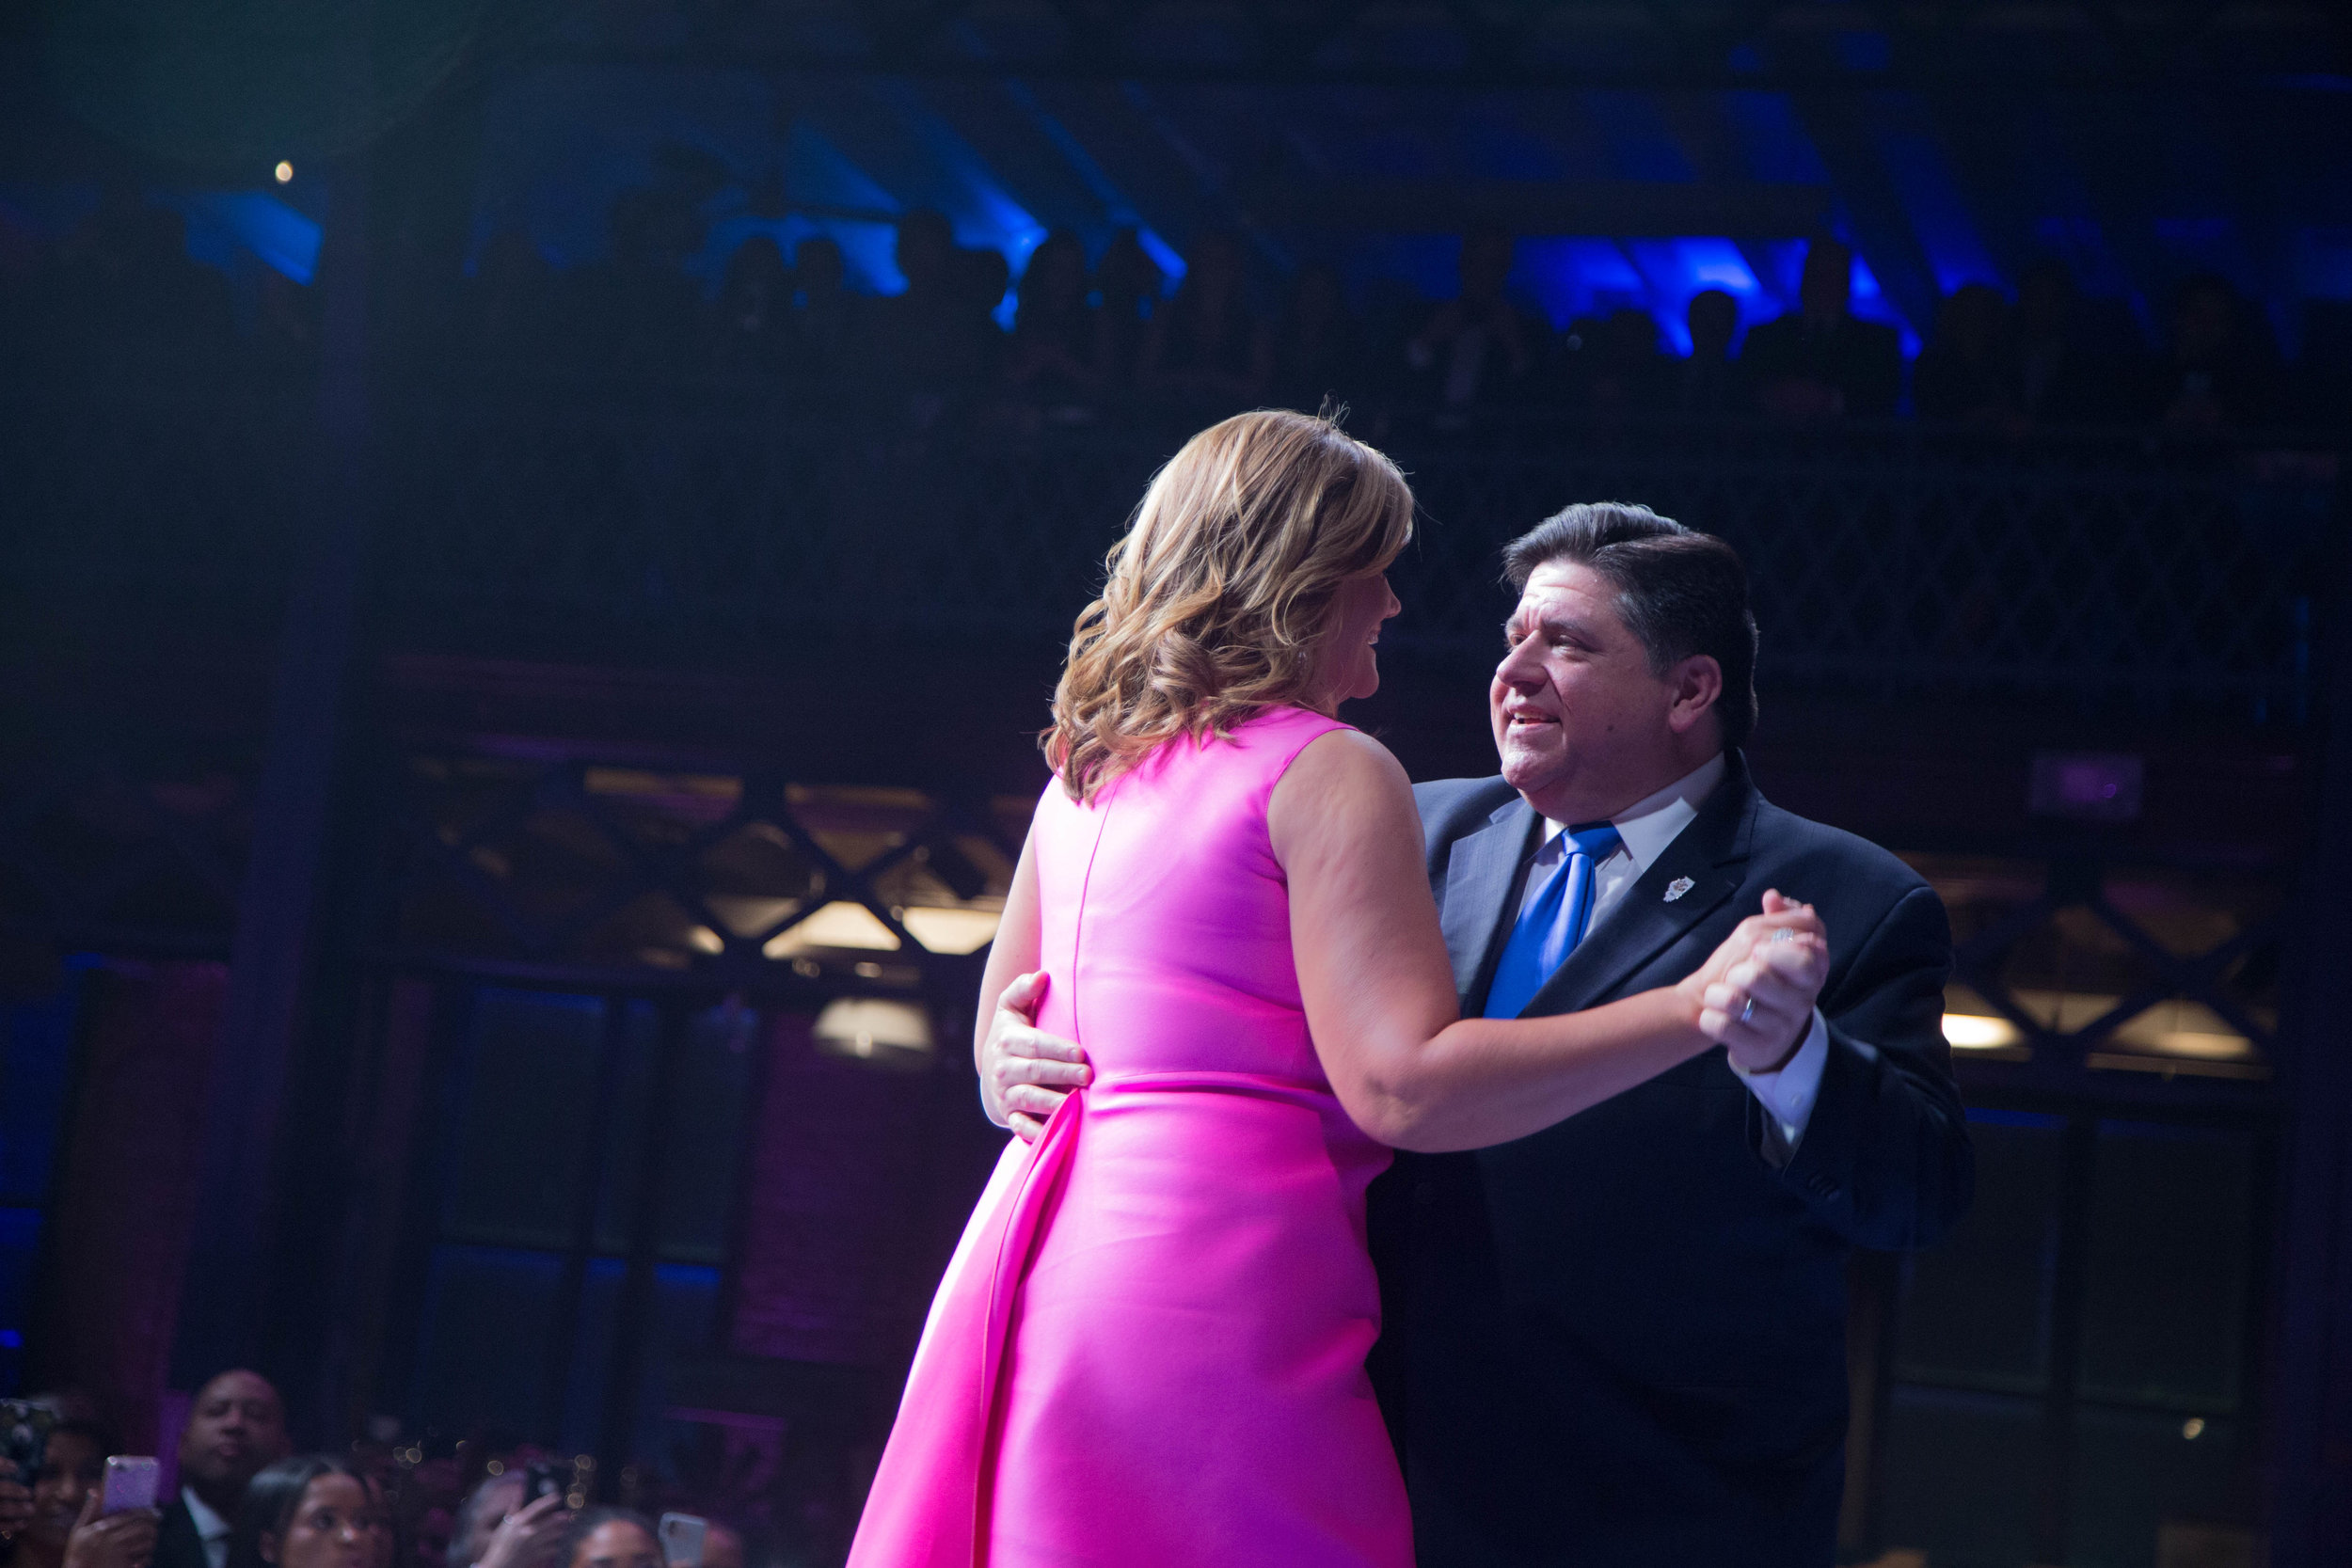 """Gov. Pritzker and his wife, M.K., have their first dance as Illinois's first couple to Marvin Gaye's """"How Sweet It Is."""" (One Illinois/Zachary Sigelko)"""